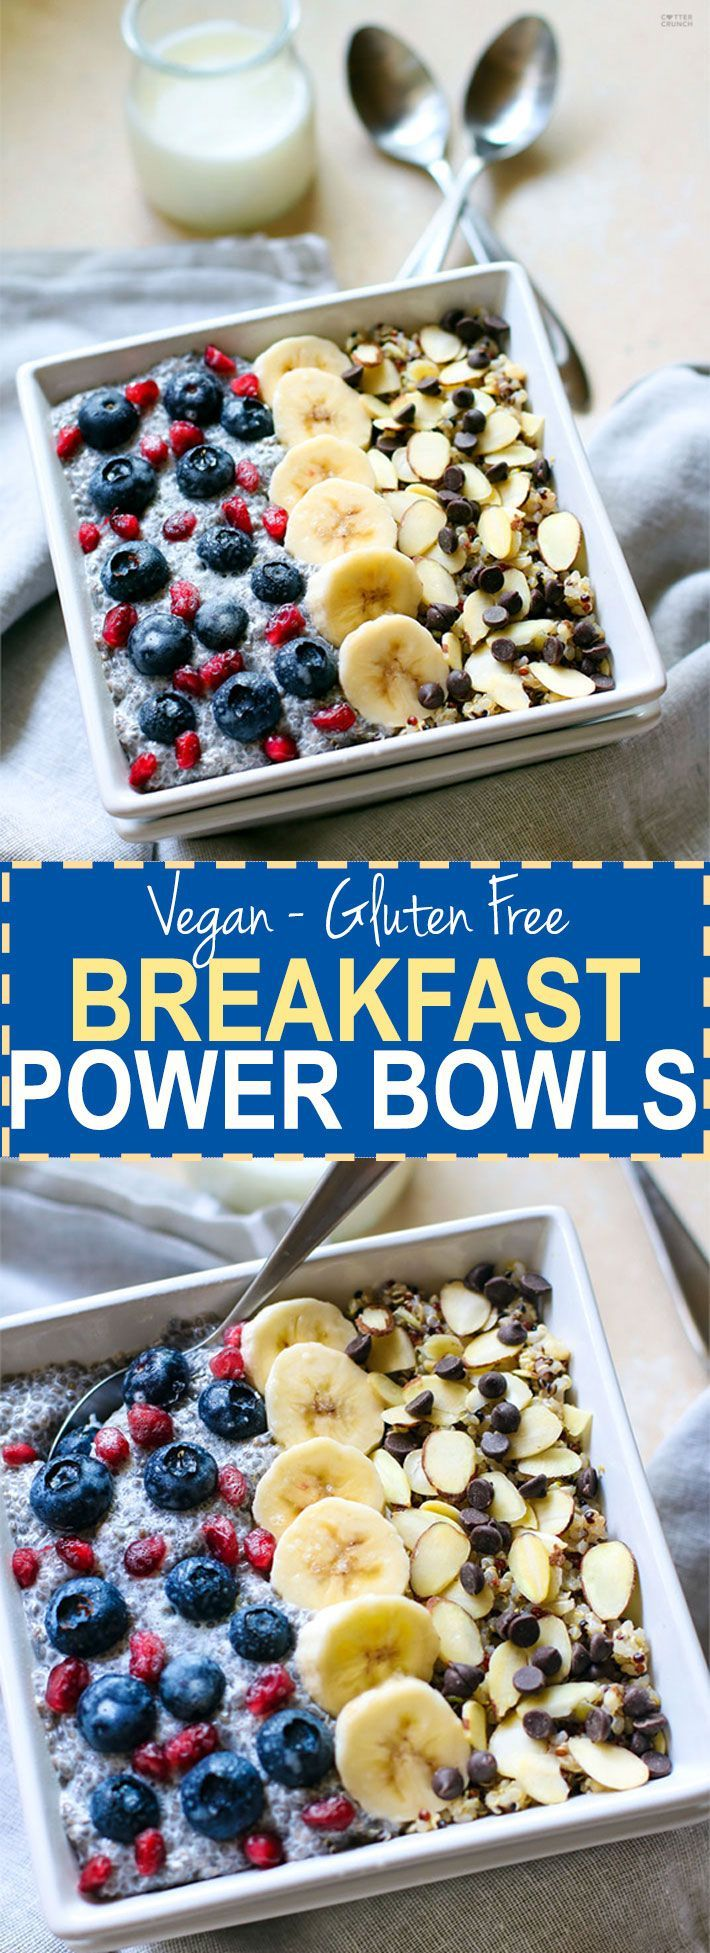 Gluten Free Breakfast Power Bowls! Real energy from real food! These vegan gluten free breakfast power bowls are made with soaked quinoa and chia seed.